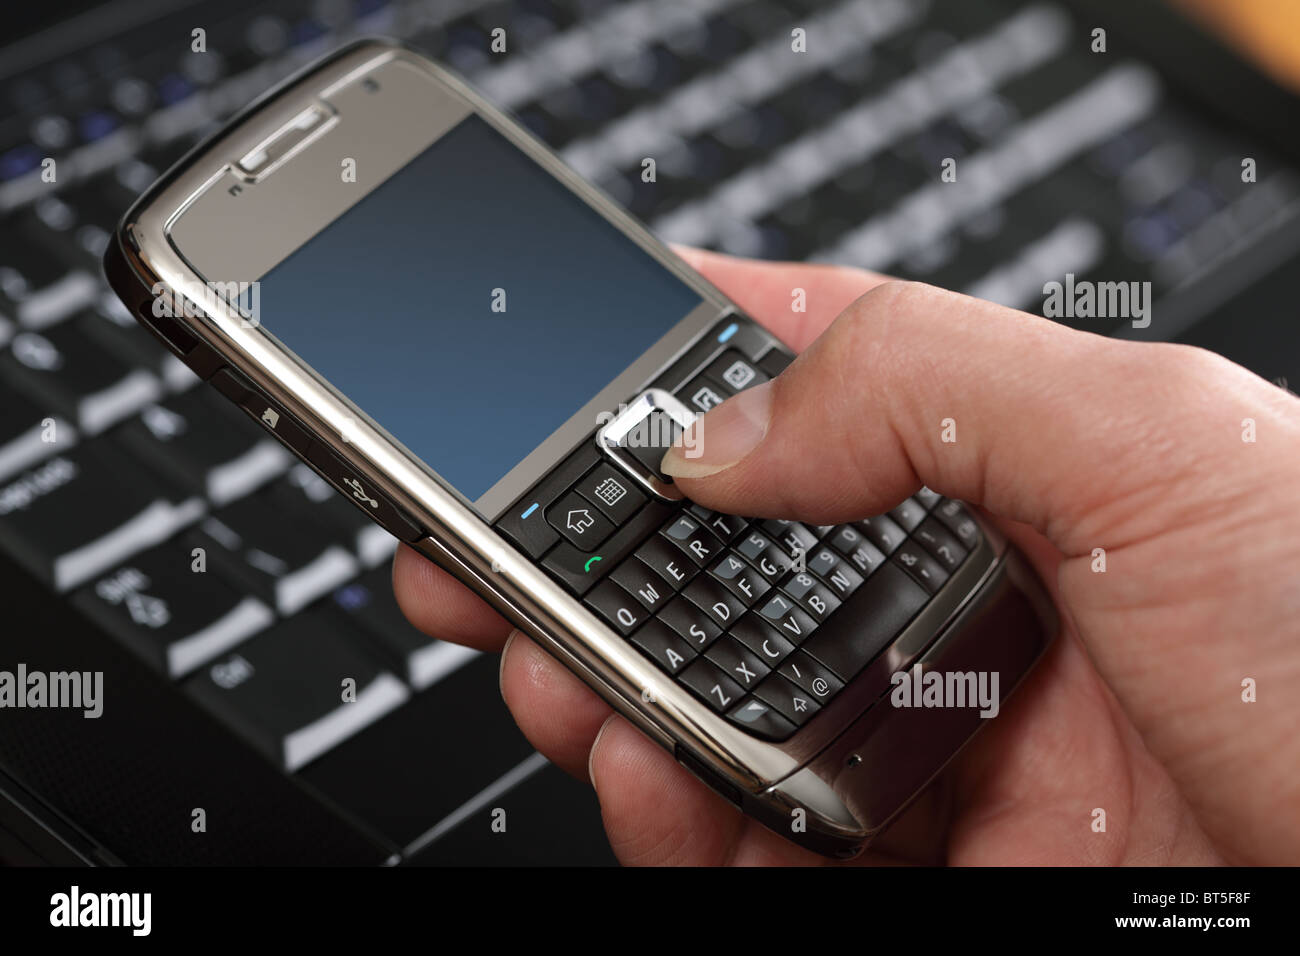 Using a smart mobile phone - Stock Image